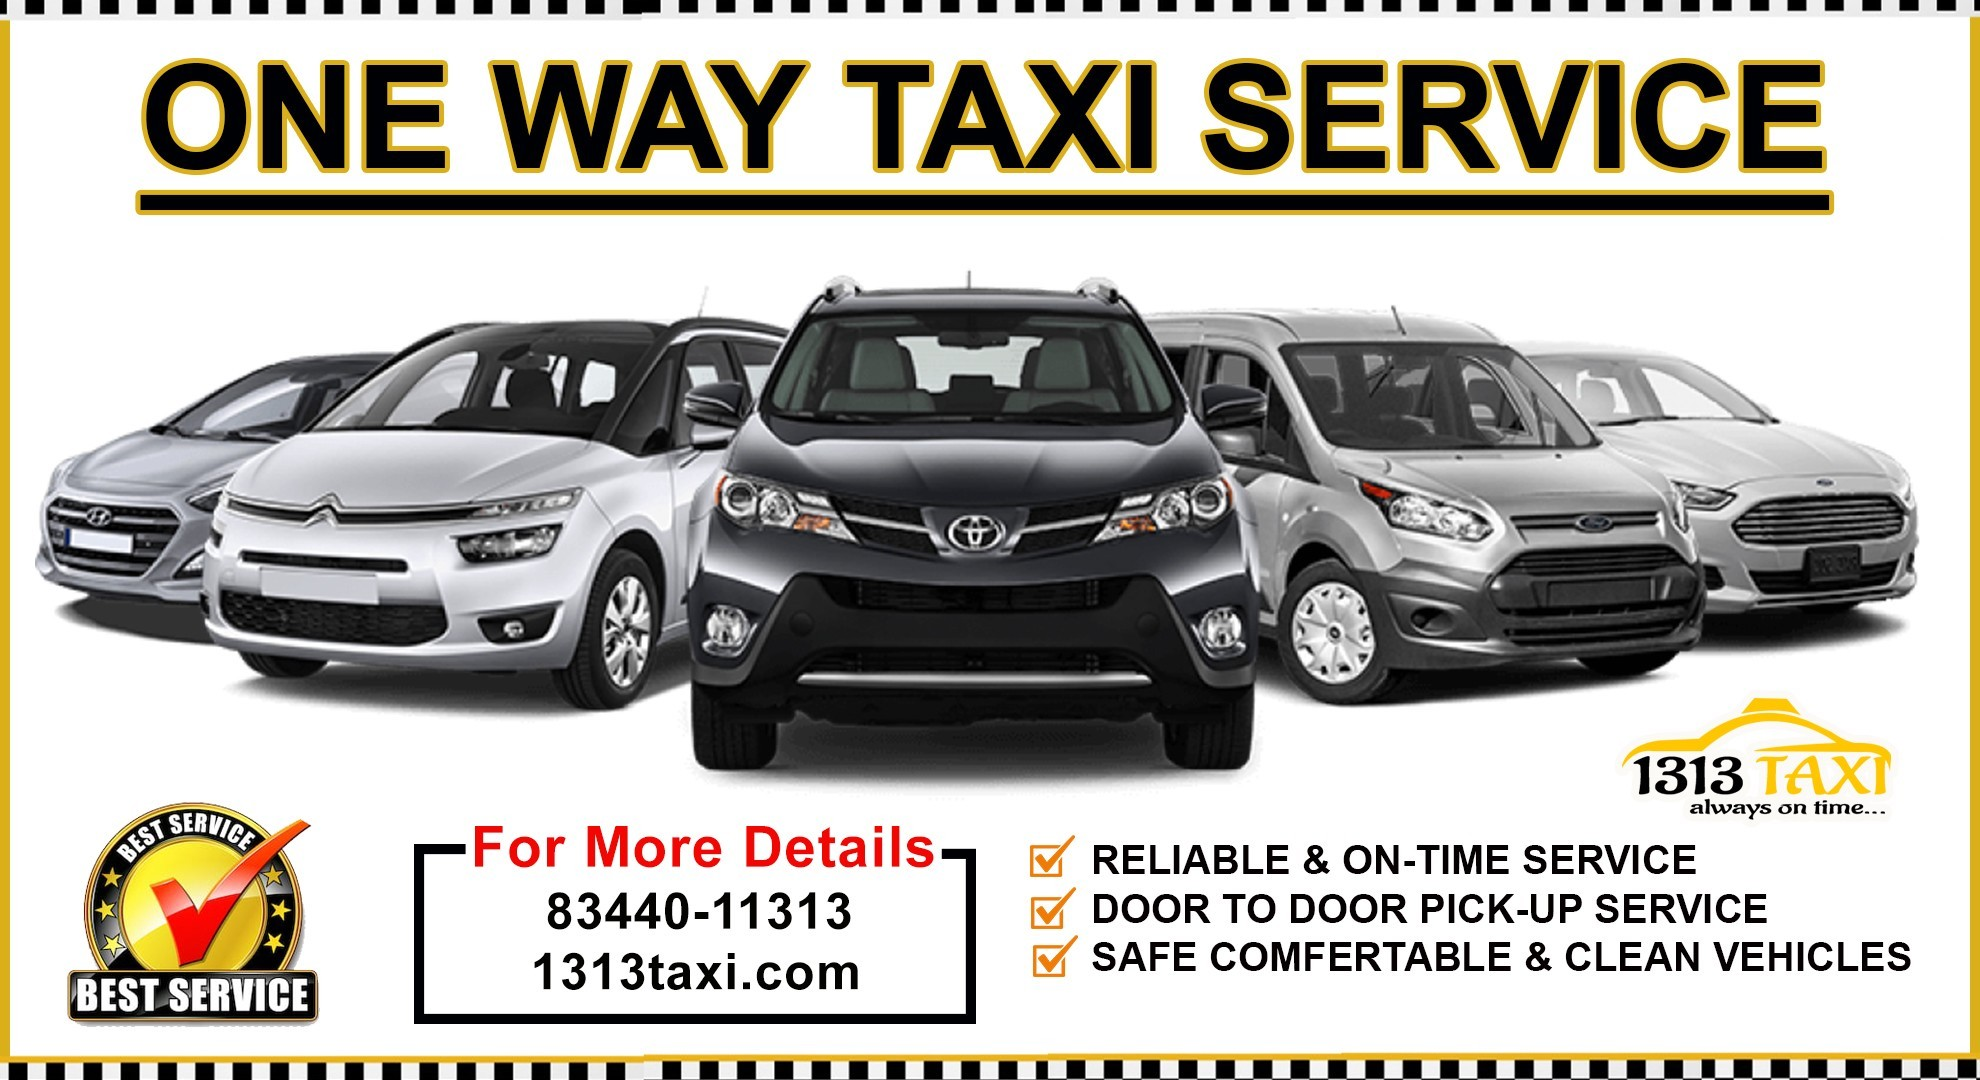 Cab service in Patiala